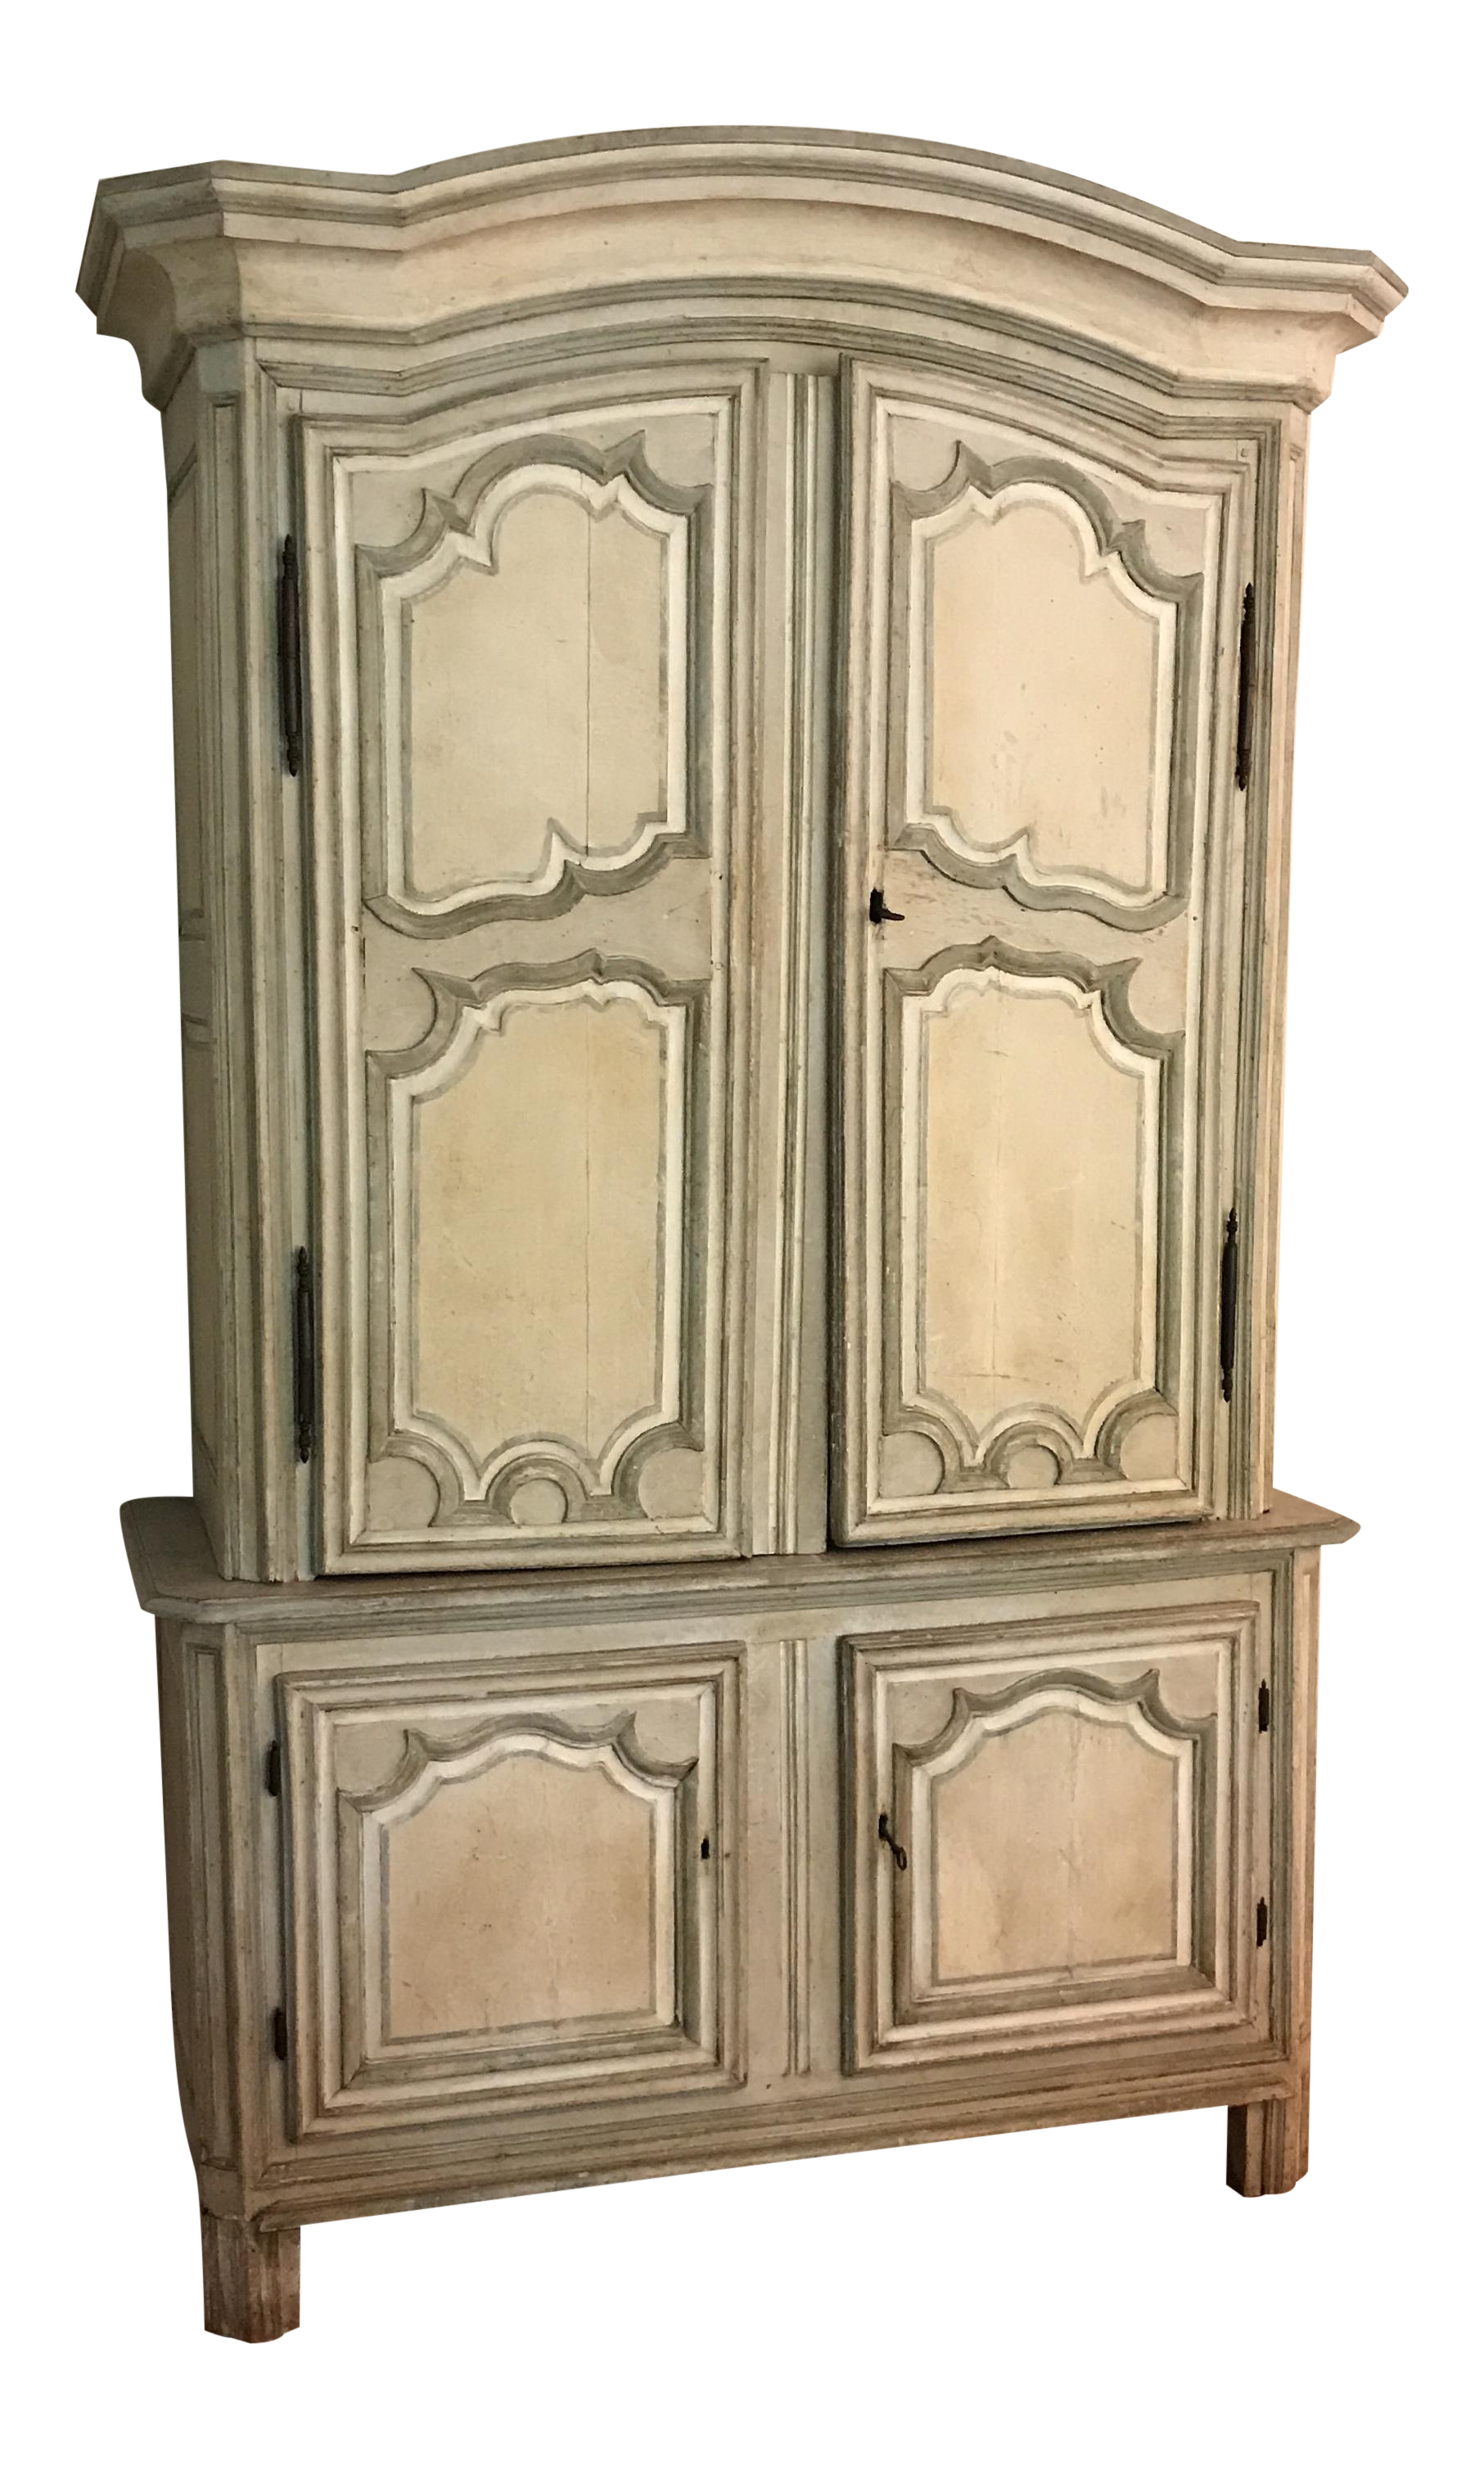 antique furniture armoire. antique french armoire furniture n